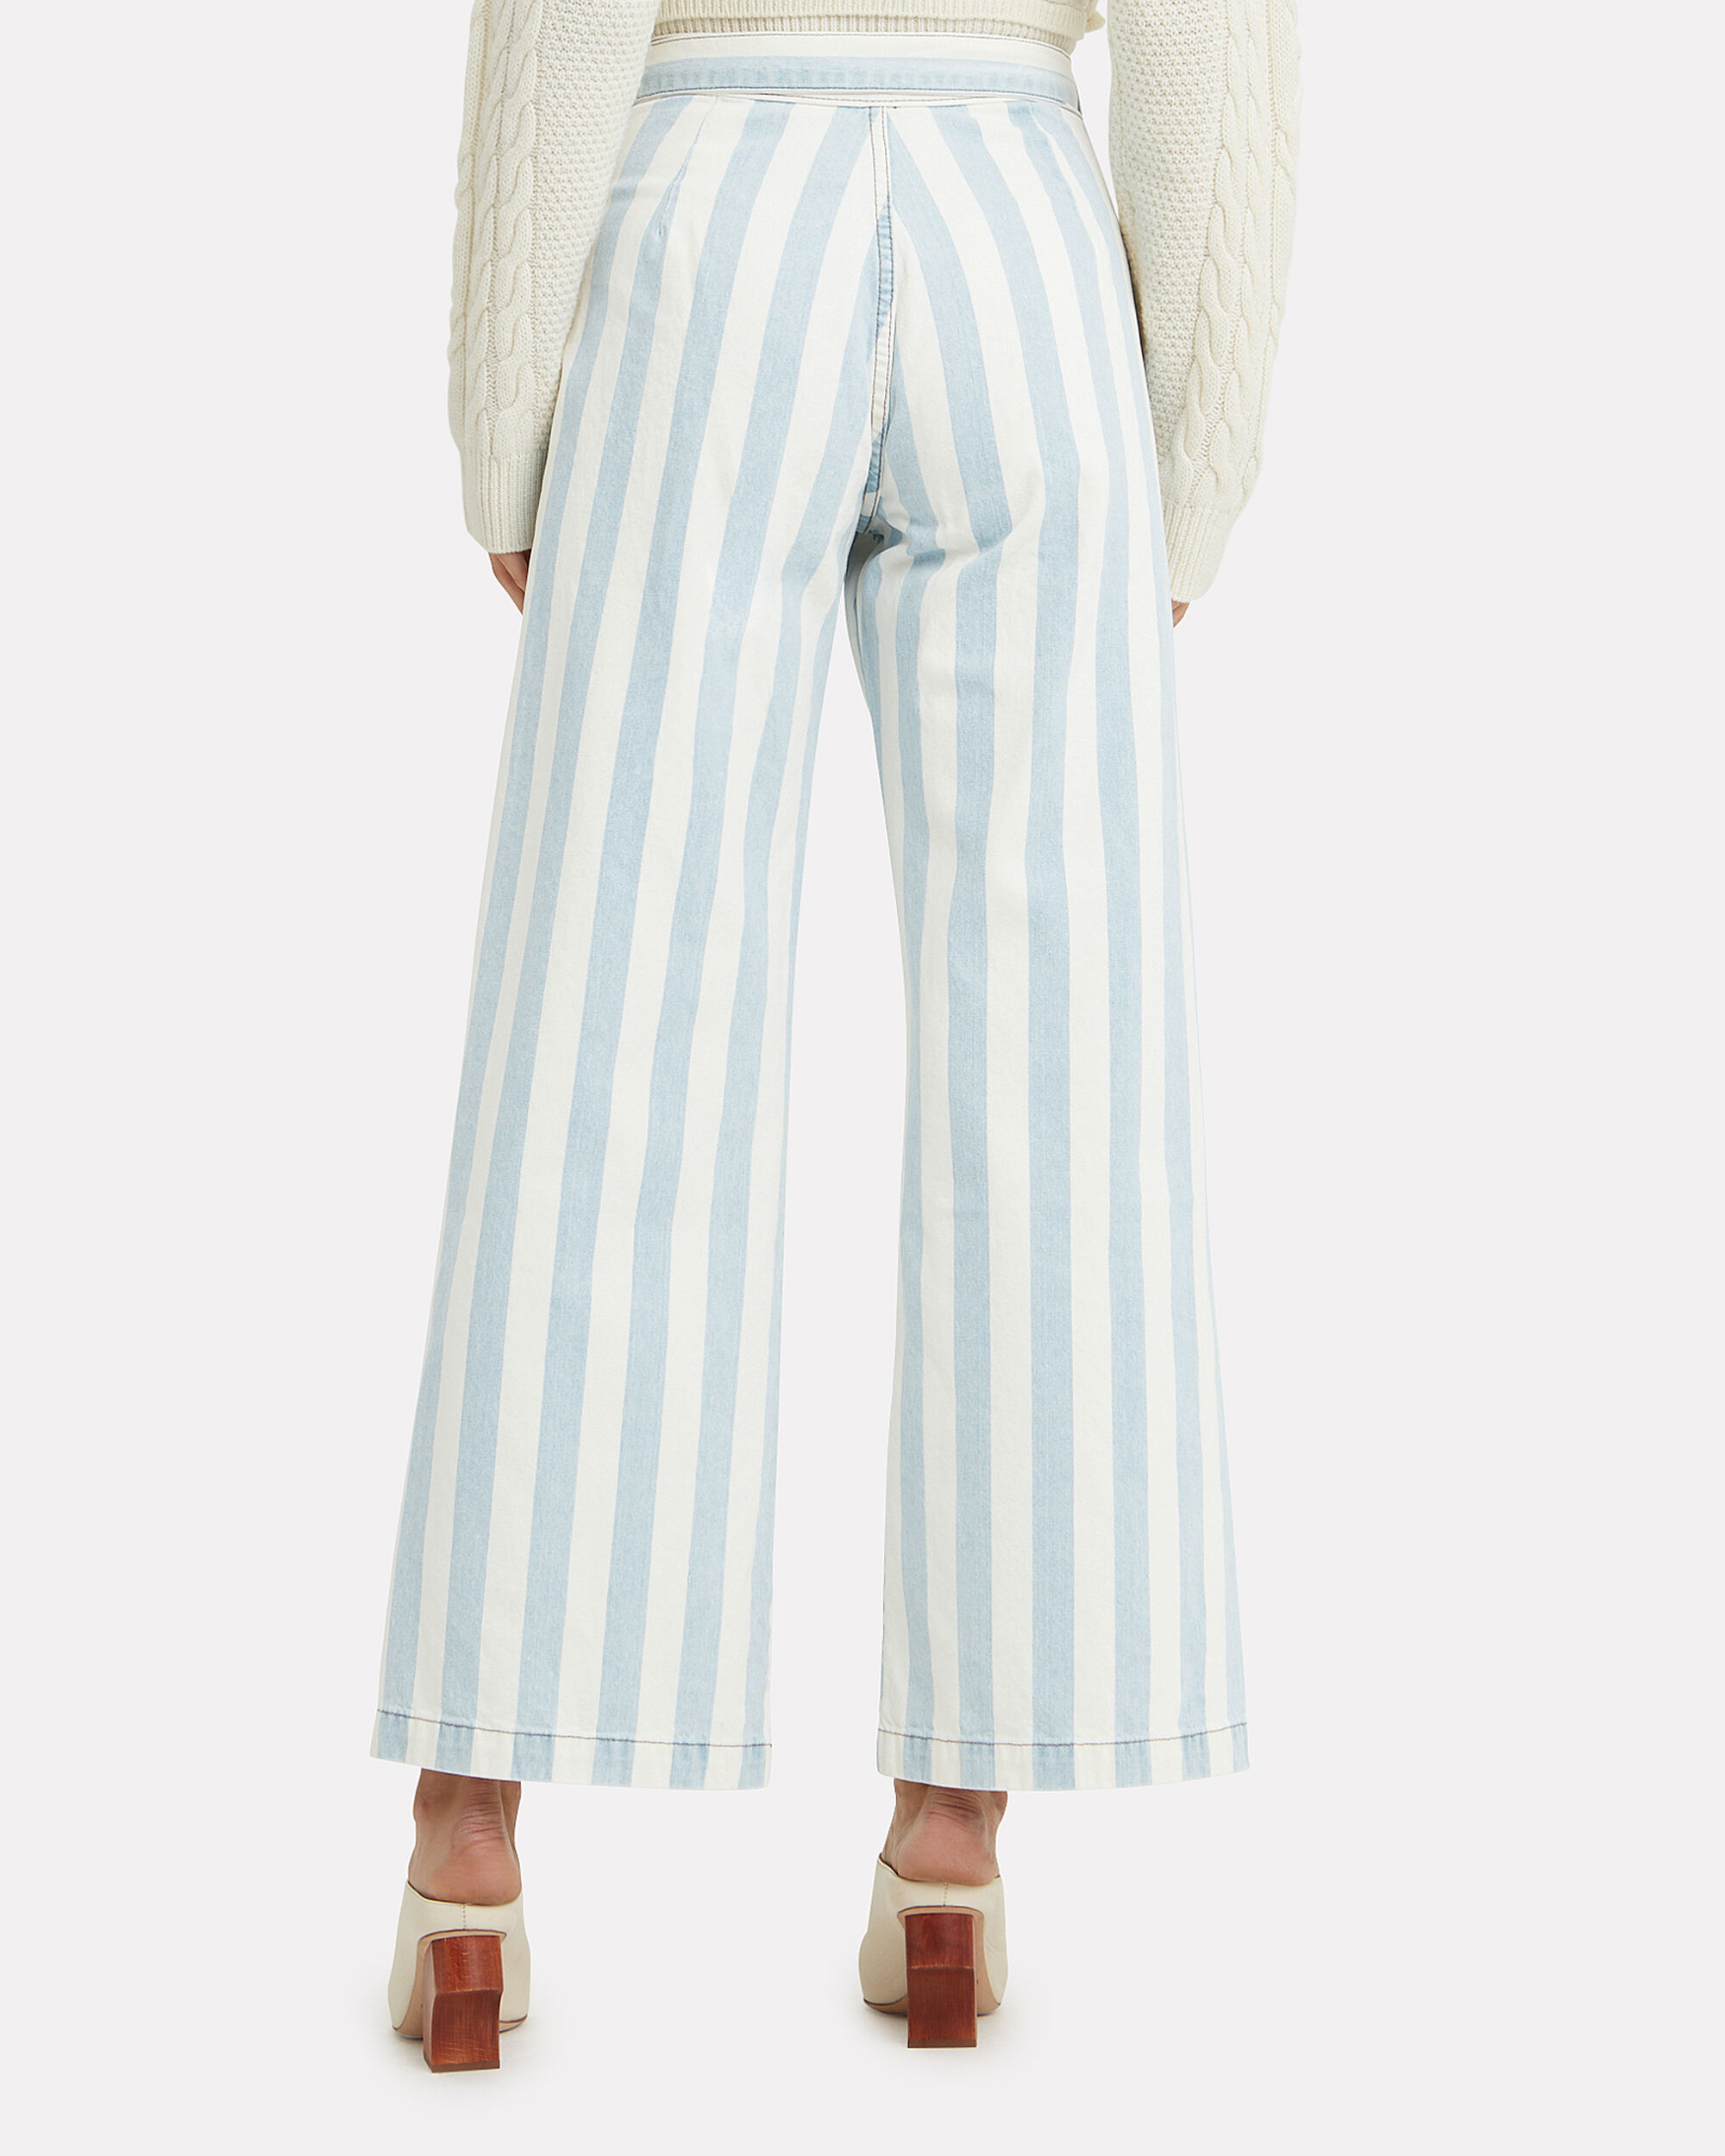 The Charley Casablanca Jeans, LIGHT BLUE/WHITE, hi-res